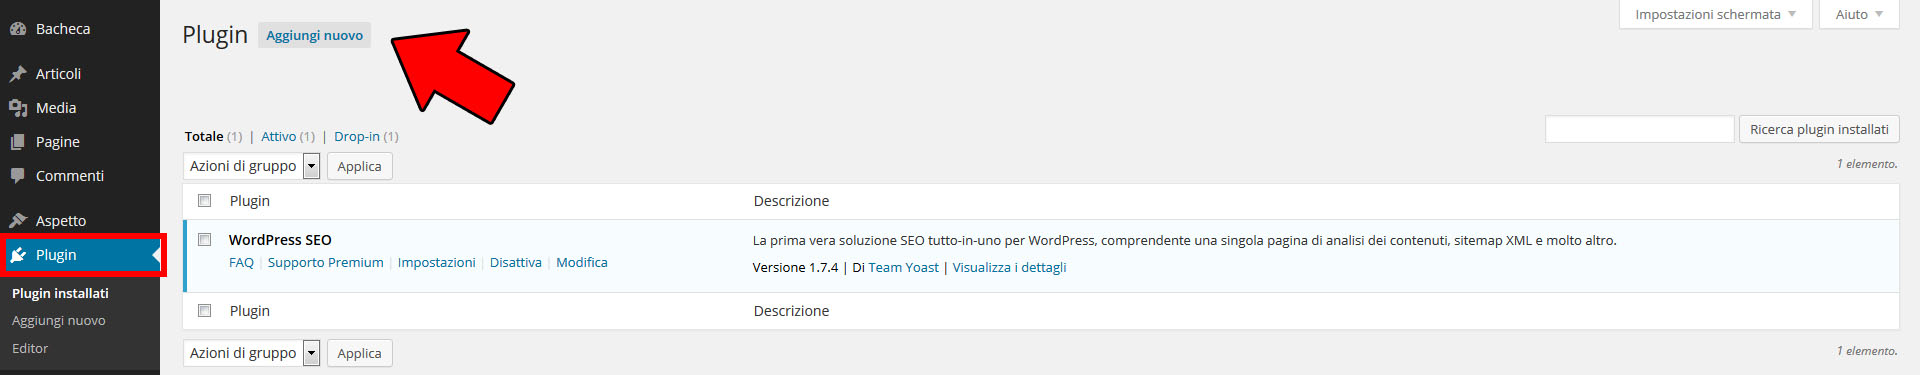 Come installare i plugin di WordPress